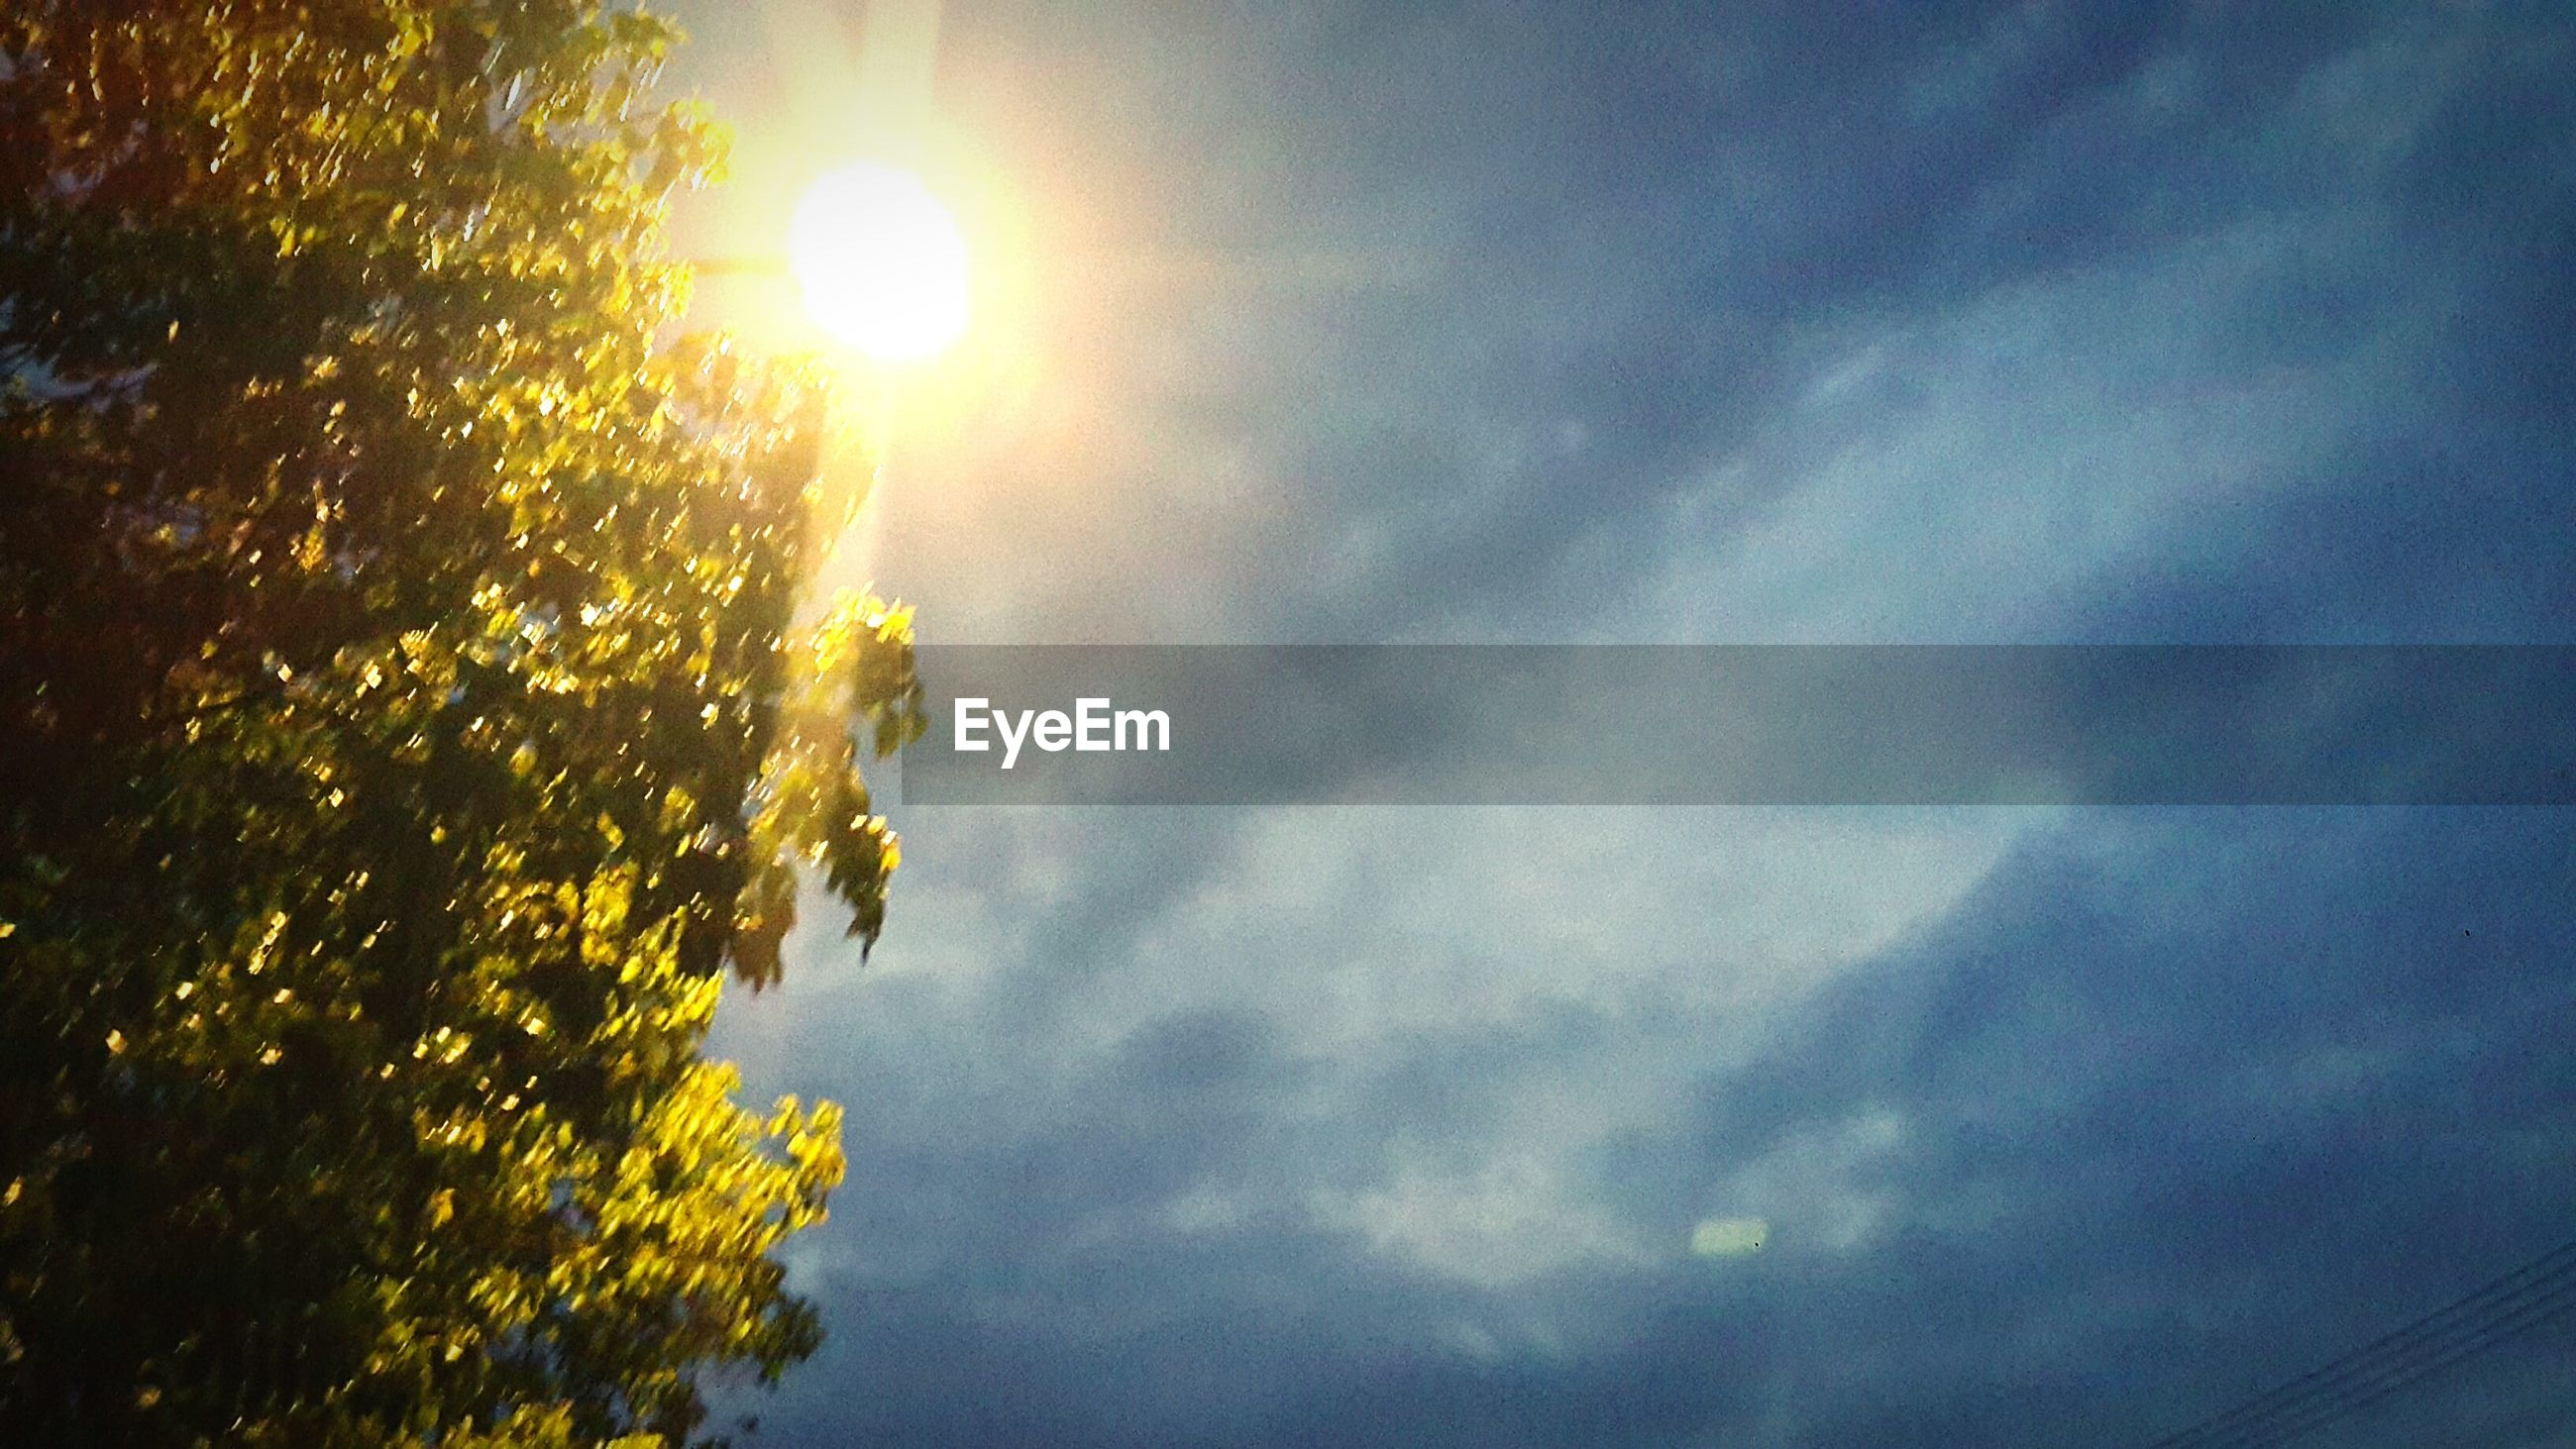 sun, sky, sunbeam, beauty in nature, sunlight, nature, sunset, cloud - sky, no people, low angle view, tree, scenics, outdoors, tranquility, day